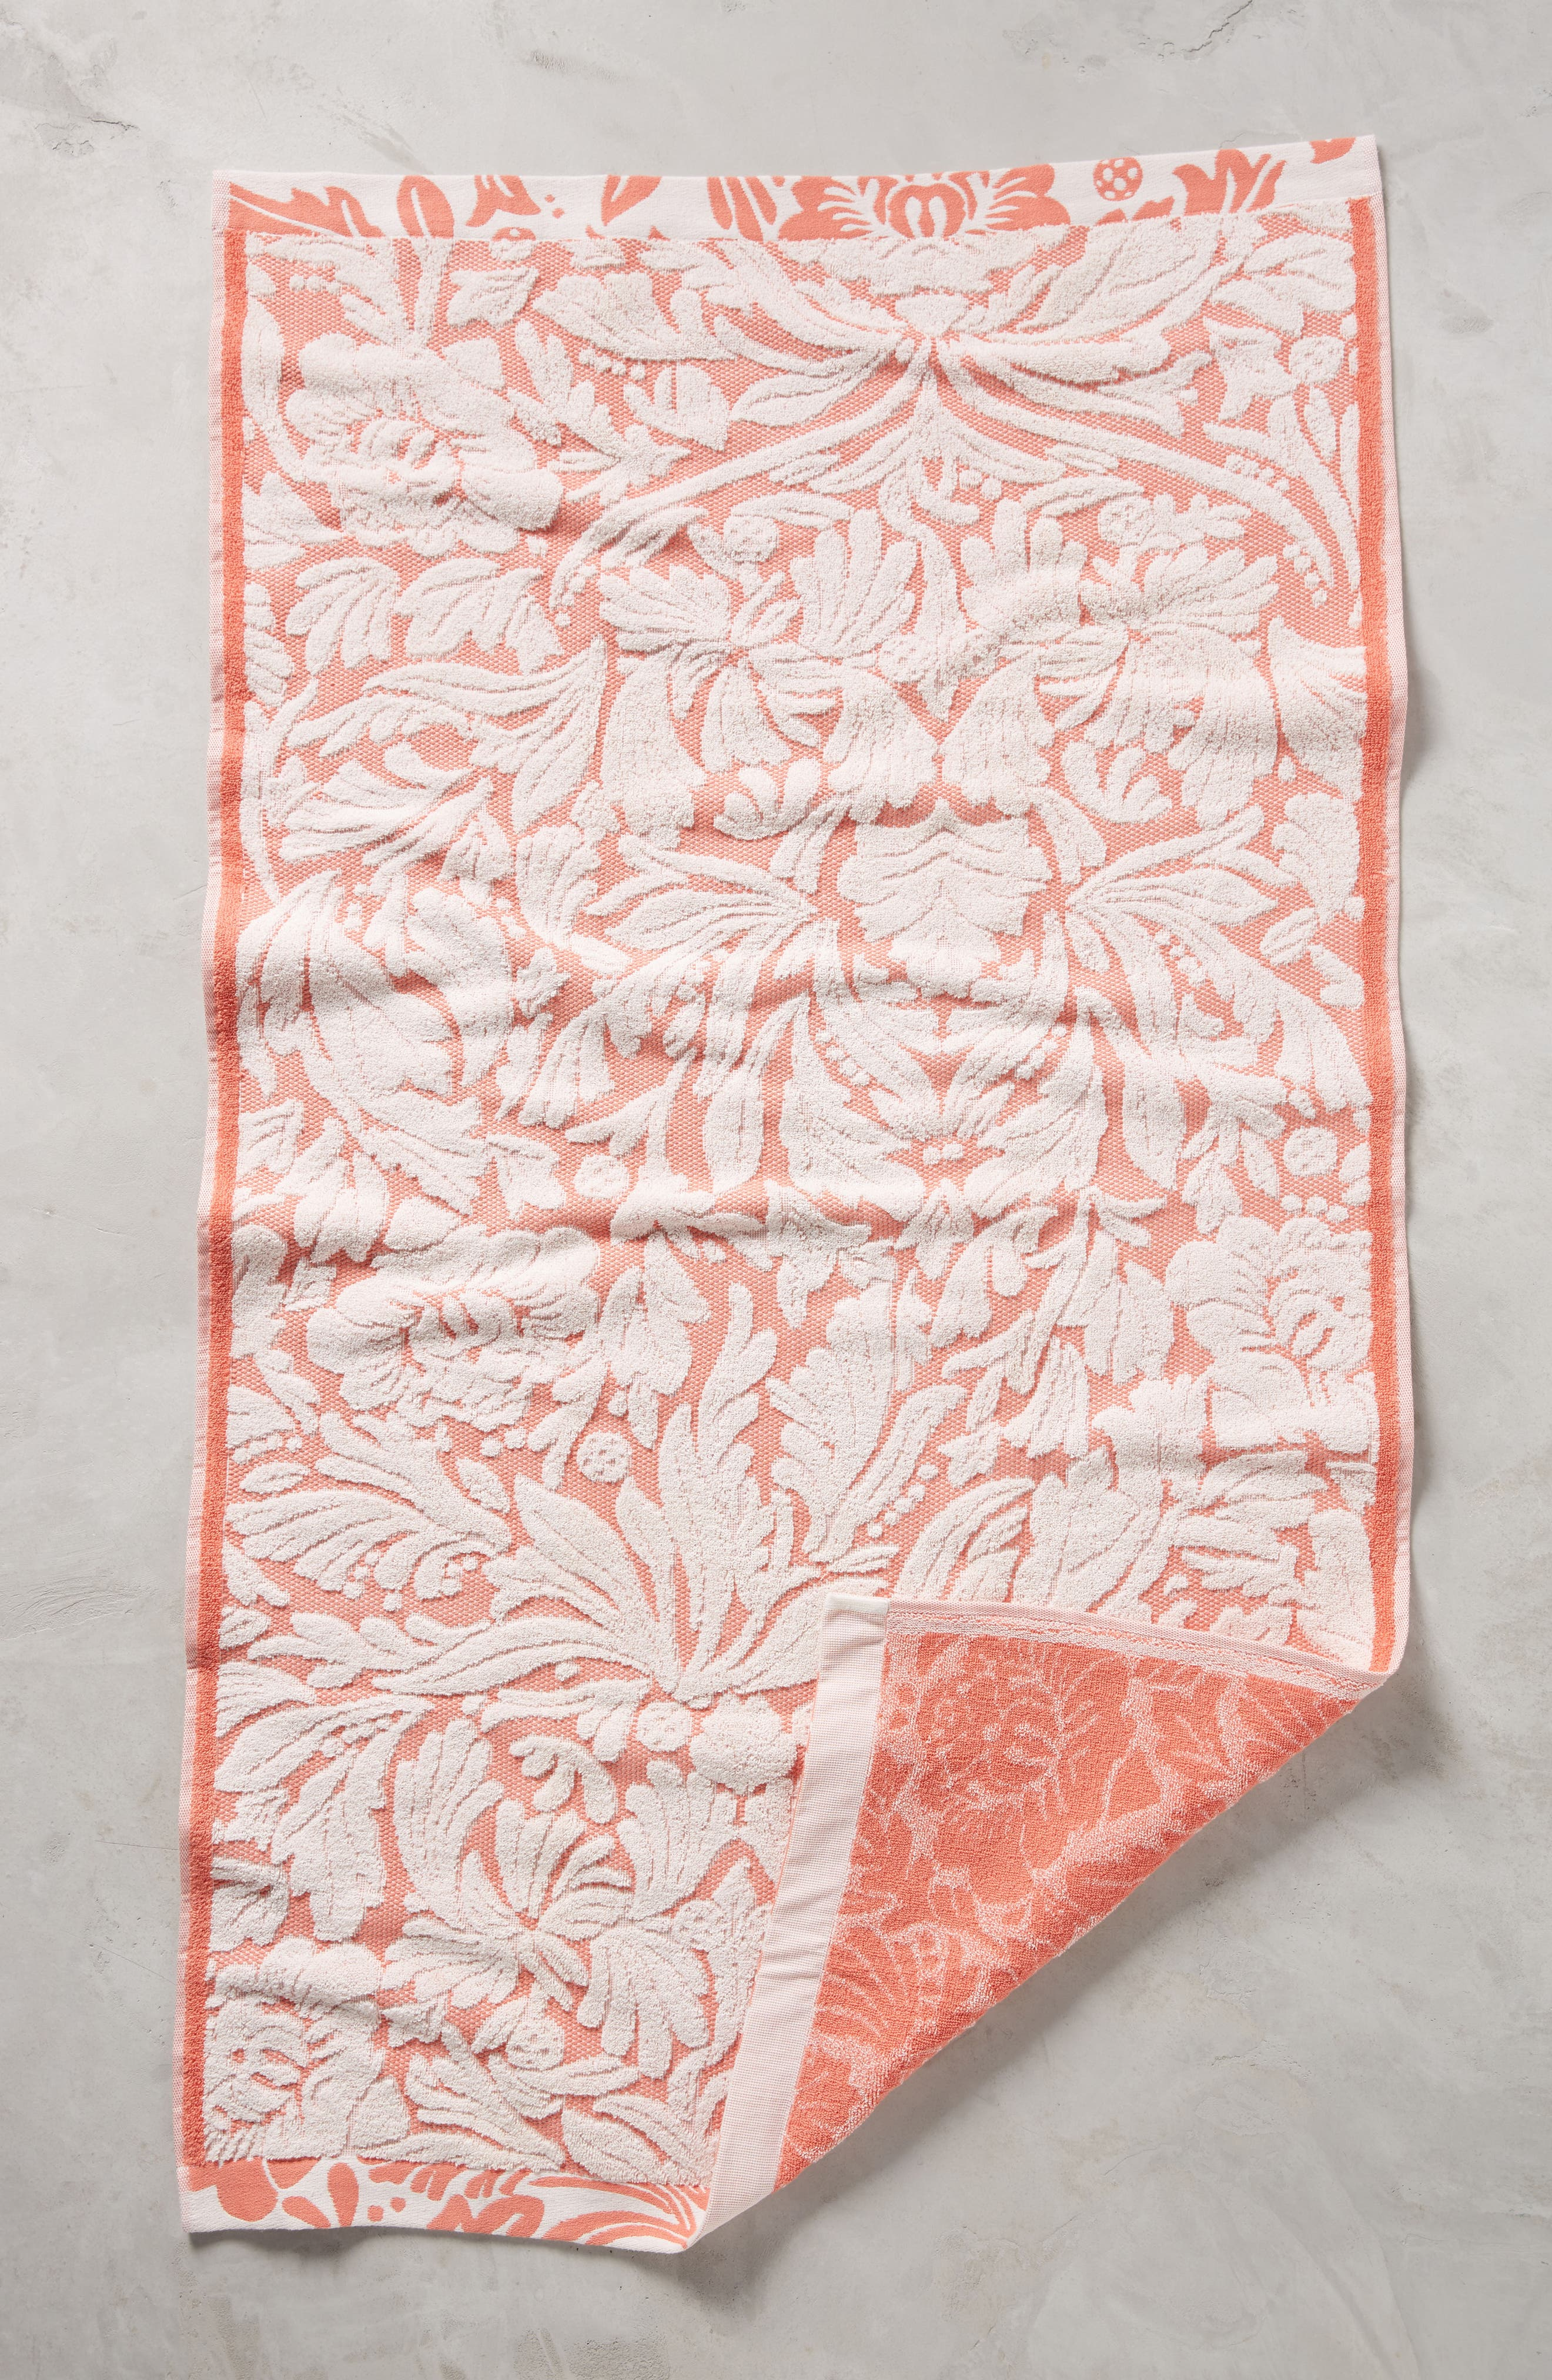 Anthropologie Mae Hand Towel